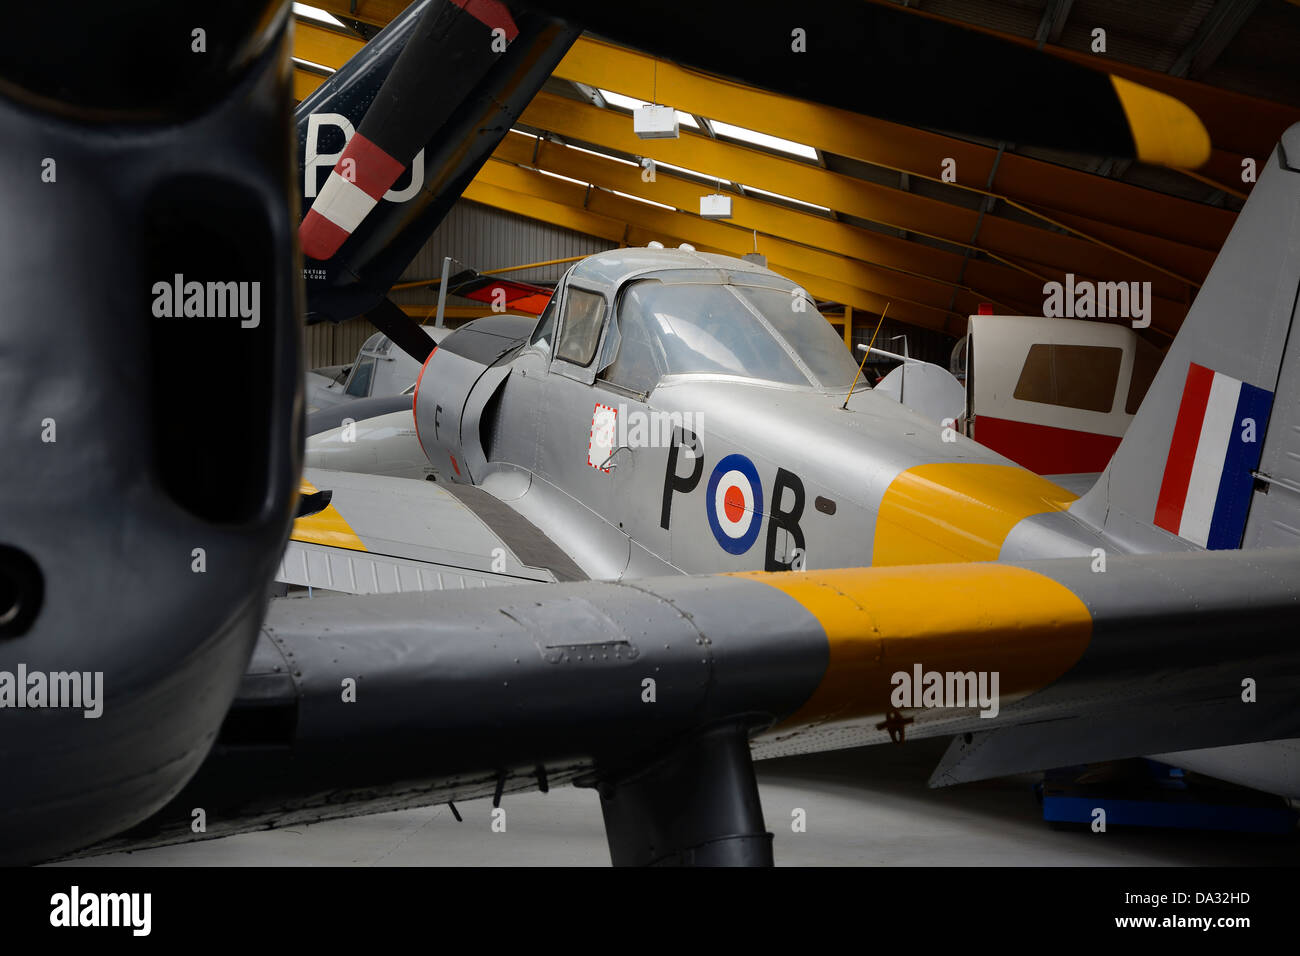 VINTAGE PERCIVAL PISTON PROVOST TRAINING AIRCRAFT OF THE RAF AT THE NEWARK AVIATION MUSEUM.  NOTTINGHAMSHIRE.  ENGLAND. - Stock Image